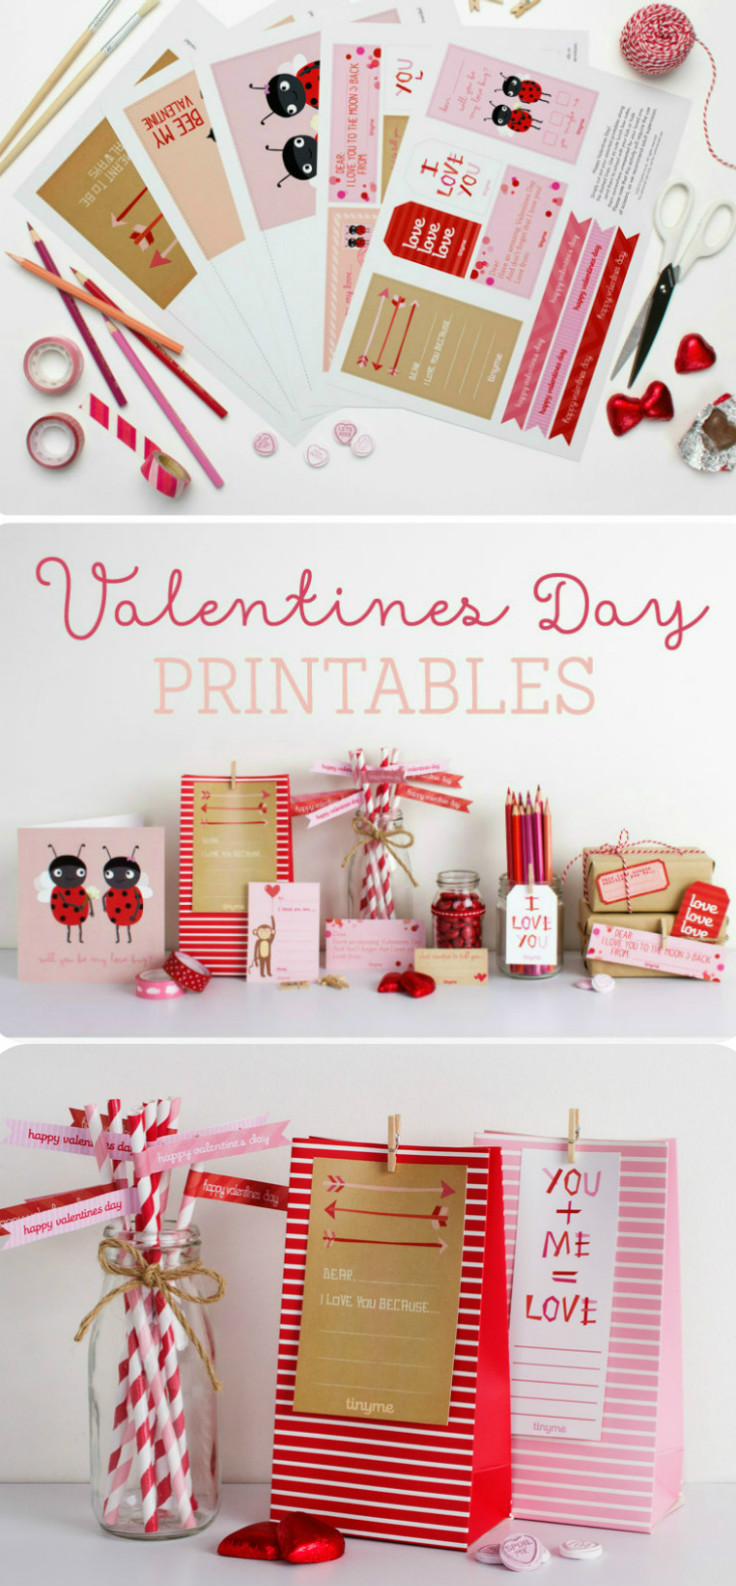 Free Valentines day printables pack with lunch box notes, Valentines day cards, Love coupons and more - These are so cute!